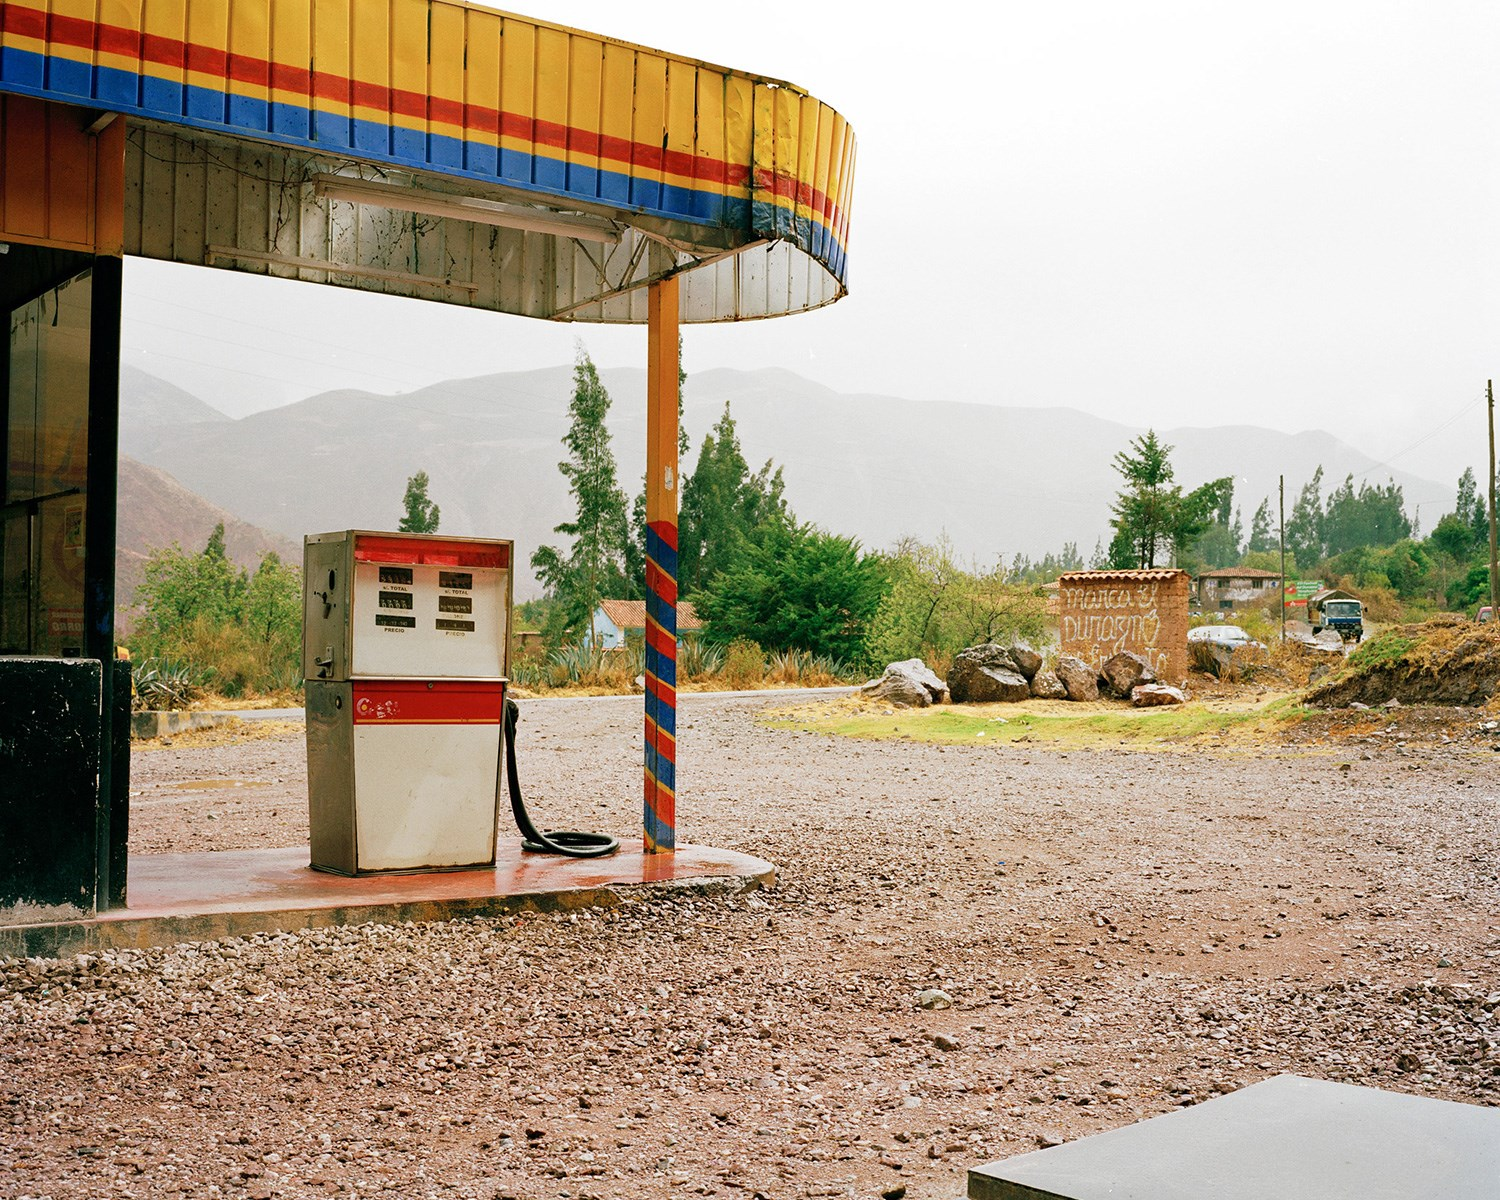 Julian-Ward-Peru-Petrol-Station.jpg